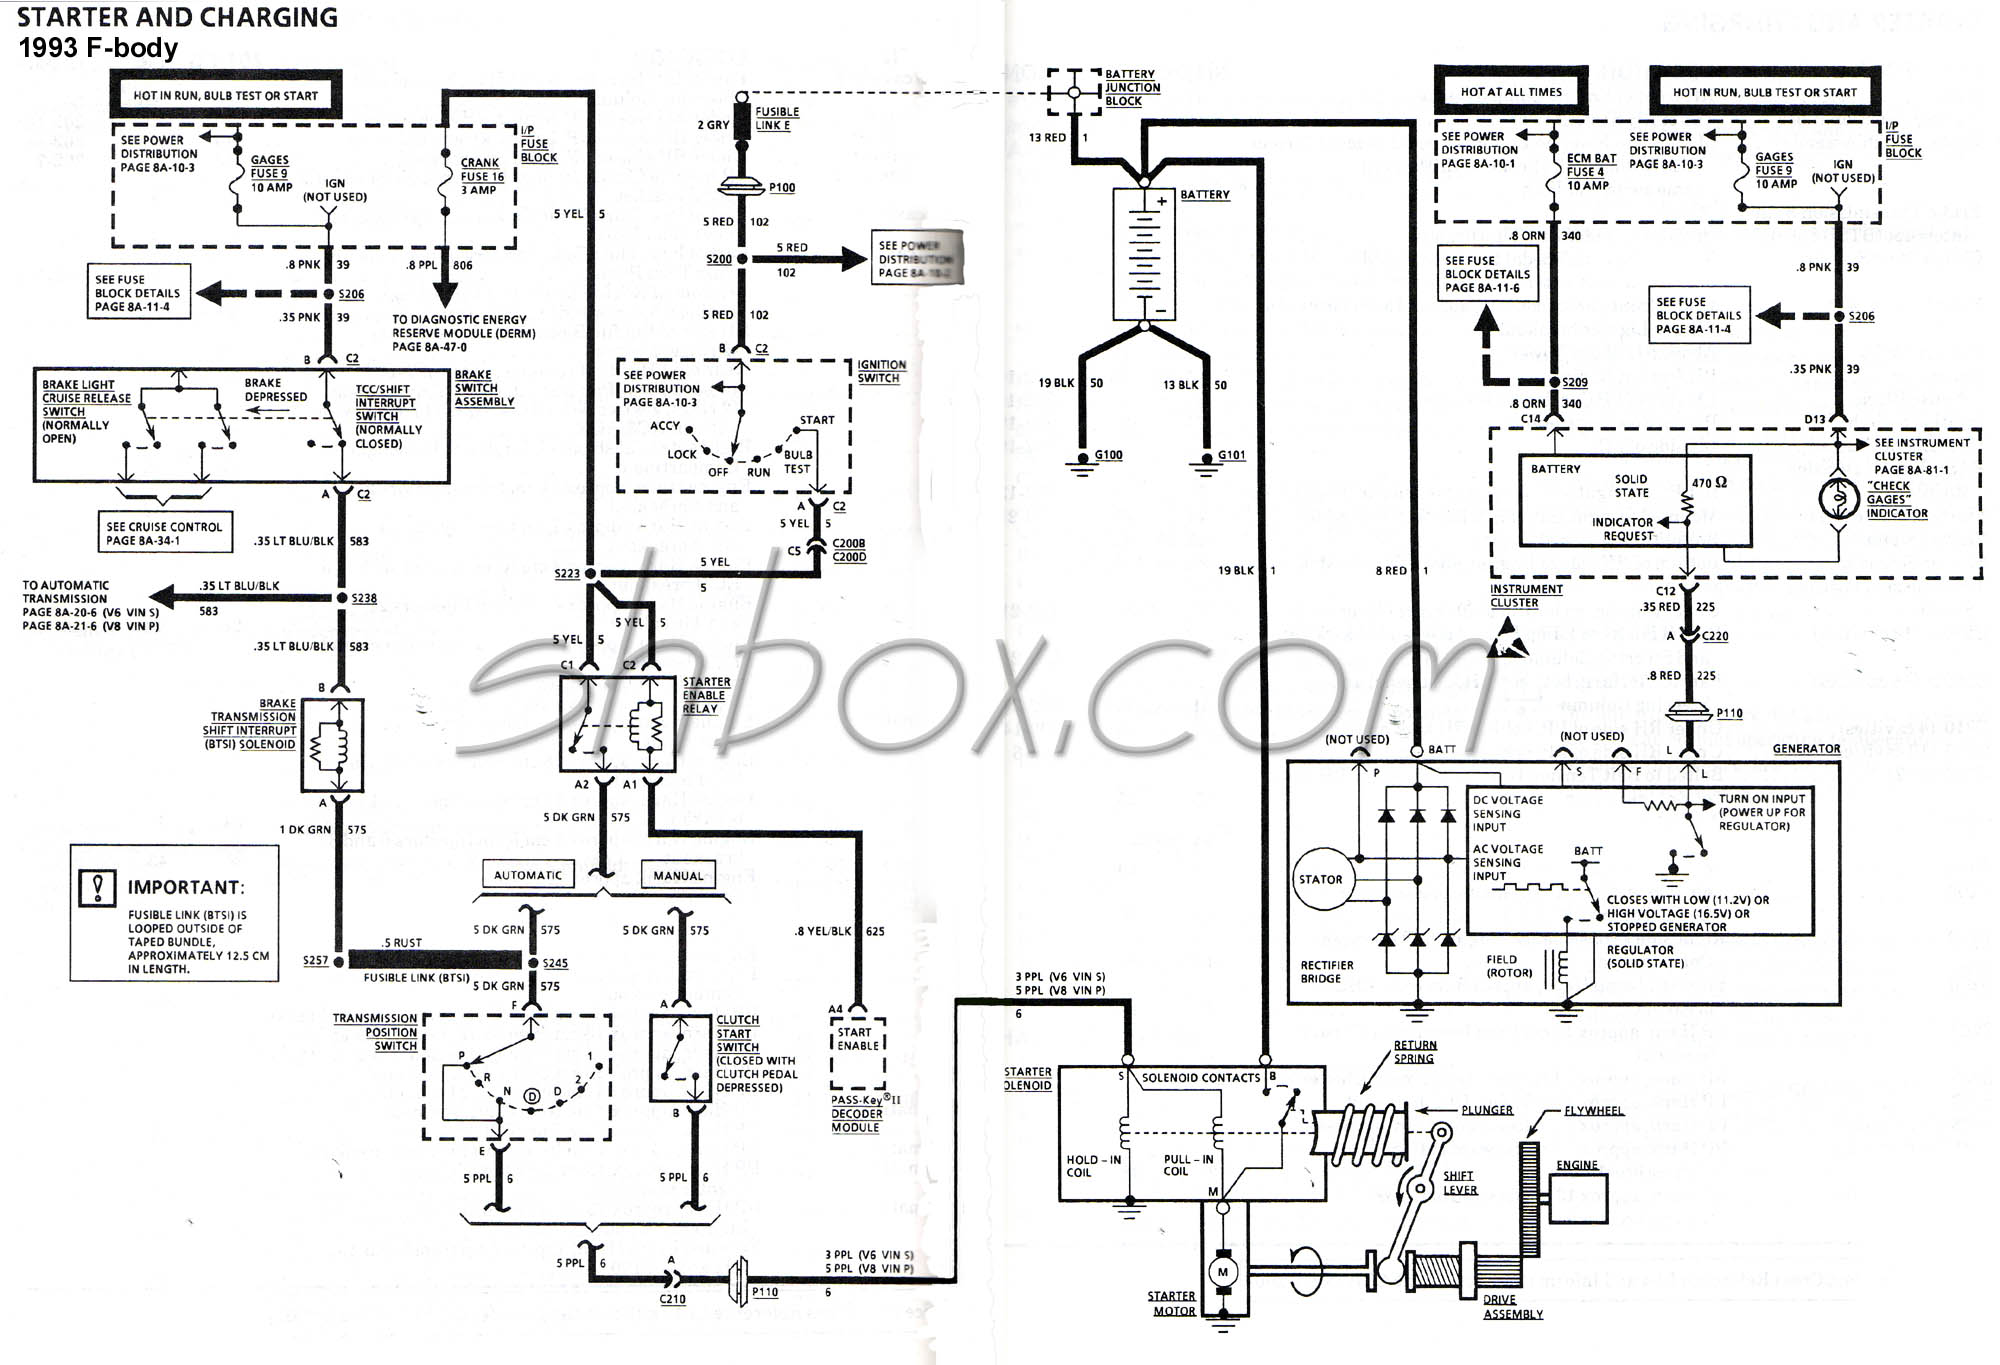 hight resolution of 4th gen lt1 f body tech aids rh shbox com 2002 trans am 2000 trans am 2001 trans am wiring schematic